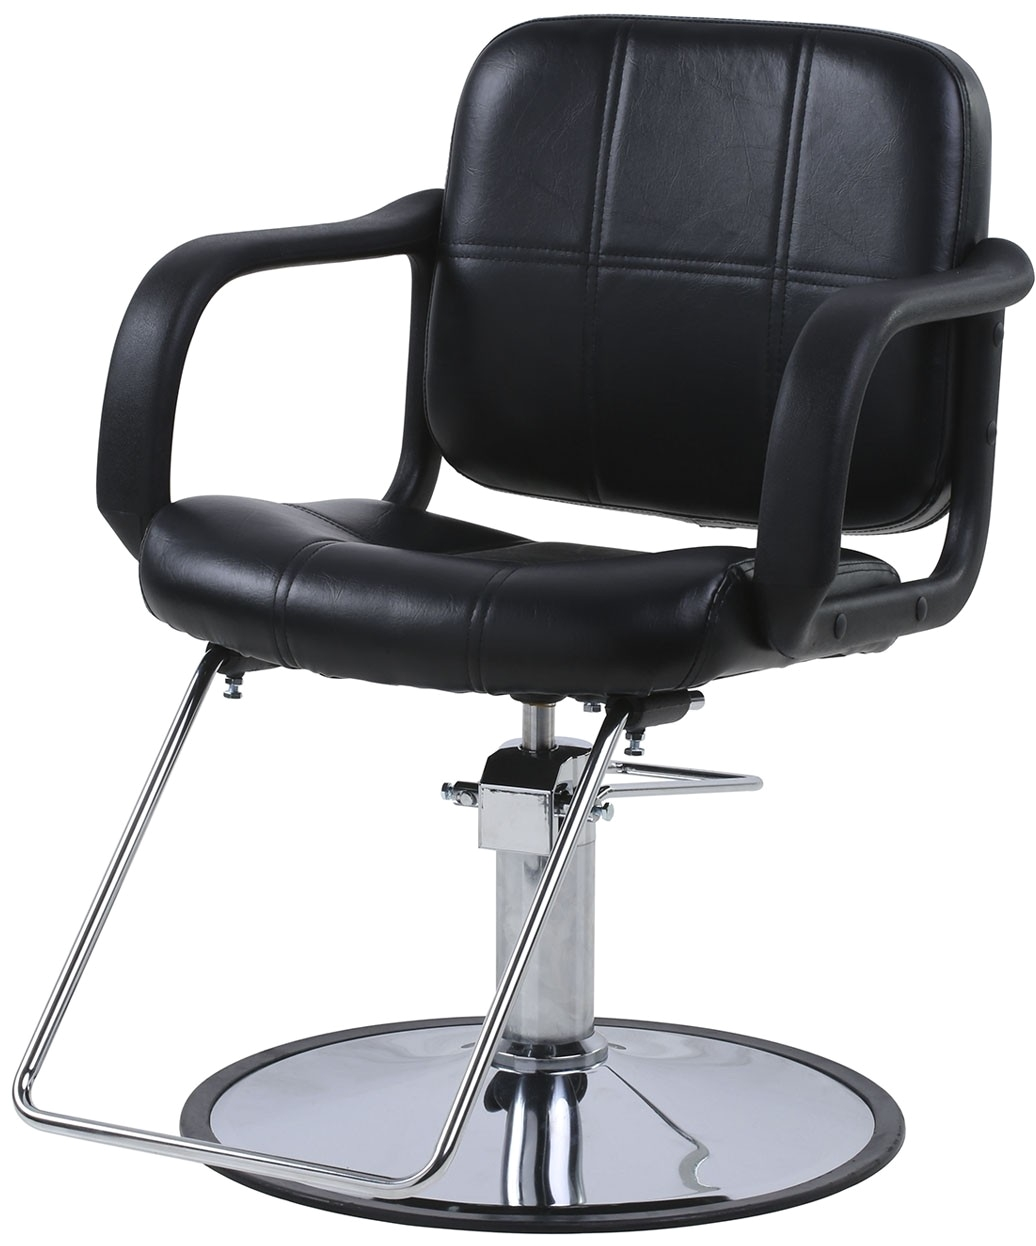 Cheap Used Salon Chairs for Sale Hydraulic Salon Styling Chair Chris Styling Chair Pump